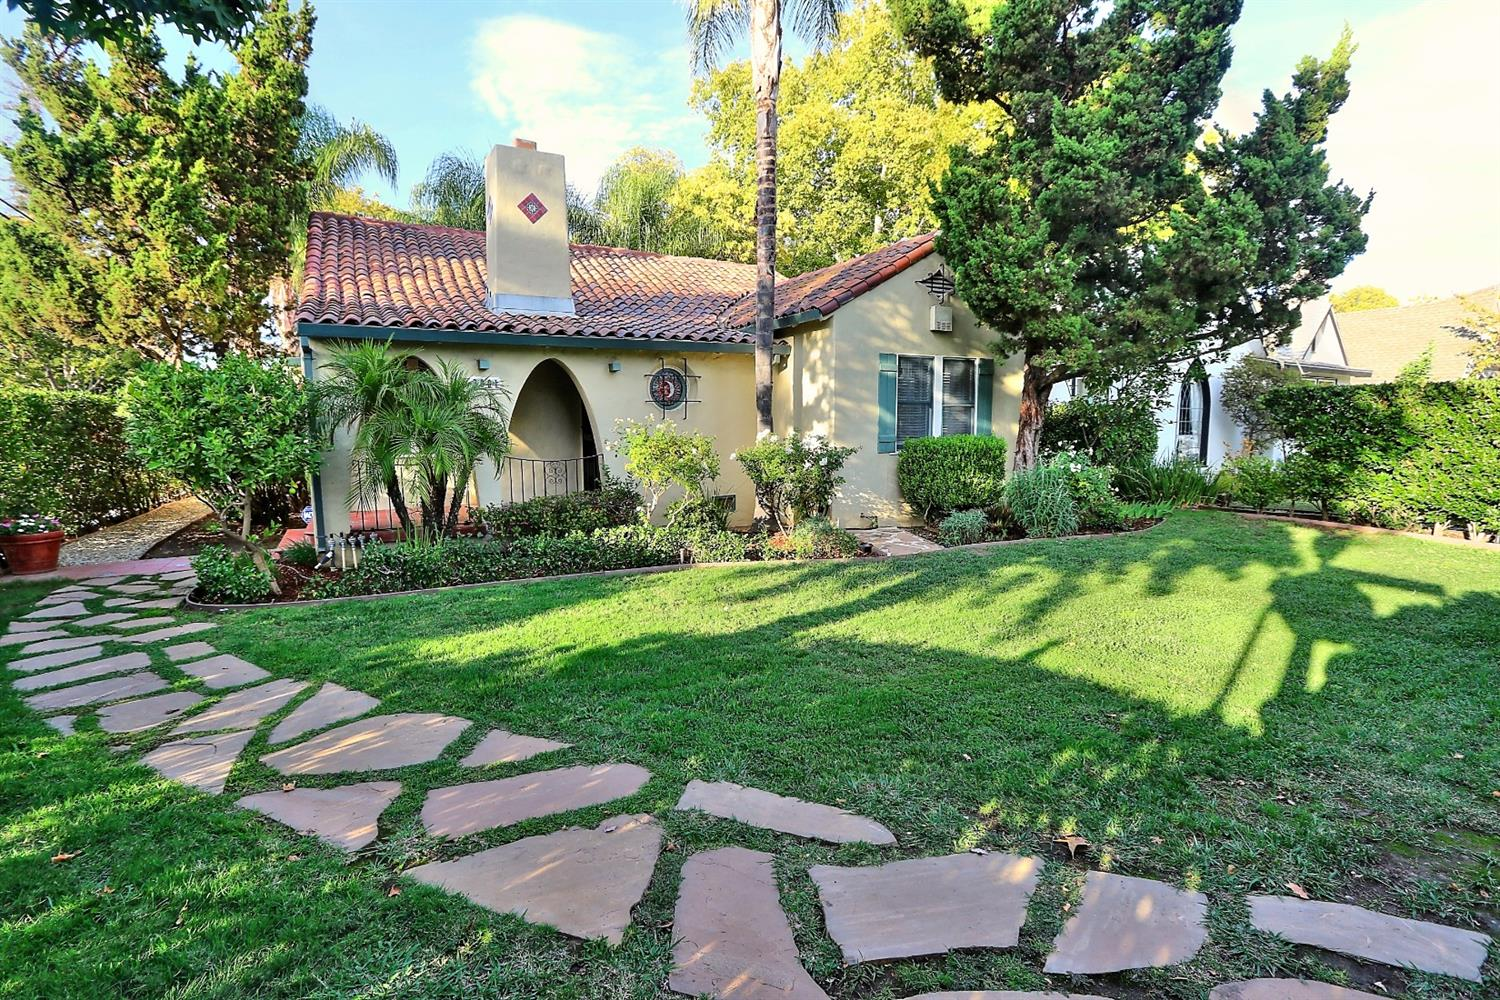 Beautiful 1929 Spanish Colonial in Curtis Park! This well maintained property has all the Traditional Spanish Charm with open beamed ceilings, arched doorways and leaded glass windows.  Master suite with private bath and skylight - Plus 2 large bedrooms and 2nd hall bath.  Bright kitchen with casual breakfast area and formal dining room looking out the french doors to the tiled courtyard. This corner lot allows for a nice big yard complete with water feature and space for a garden. Don't miss the quarter basement perfect for storage or a wine cellar. Washer/Dryer & Refrigerator stay